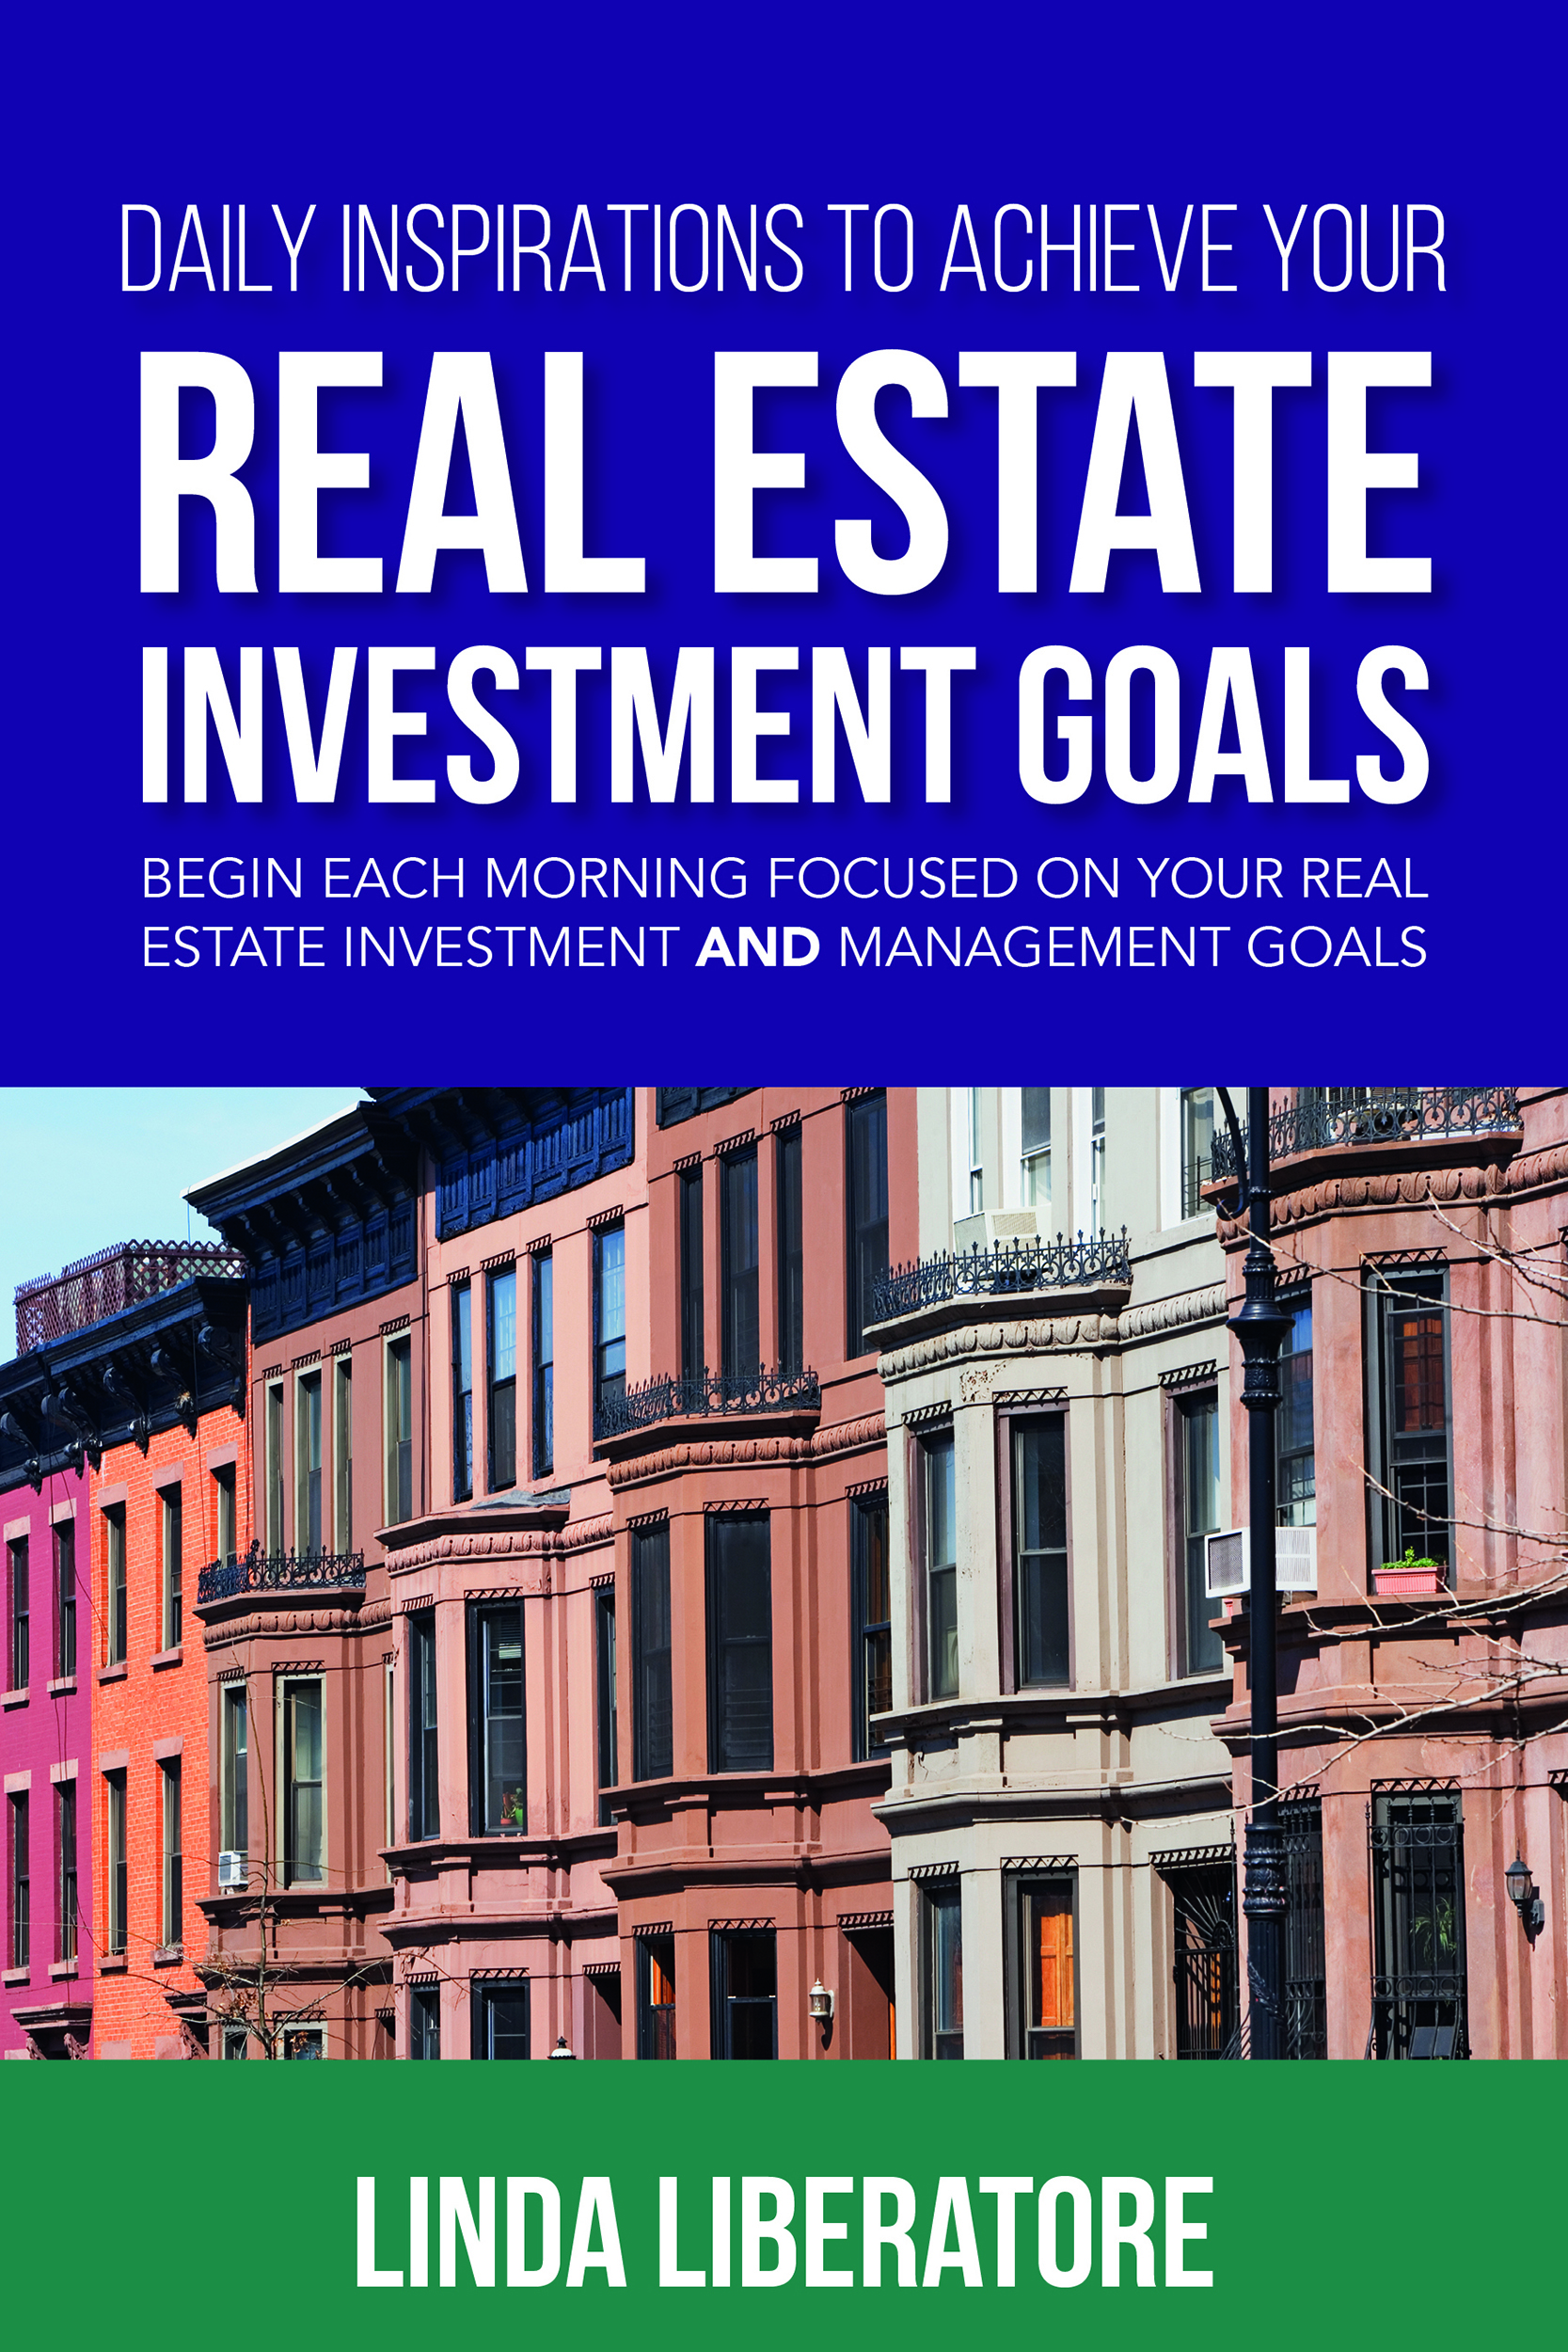 thesis on real estate investment Western university scholarship@western electronic thesis and dissertation repository august 2016 real estate investment trusts in canada samita pachai.